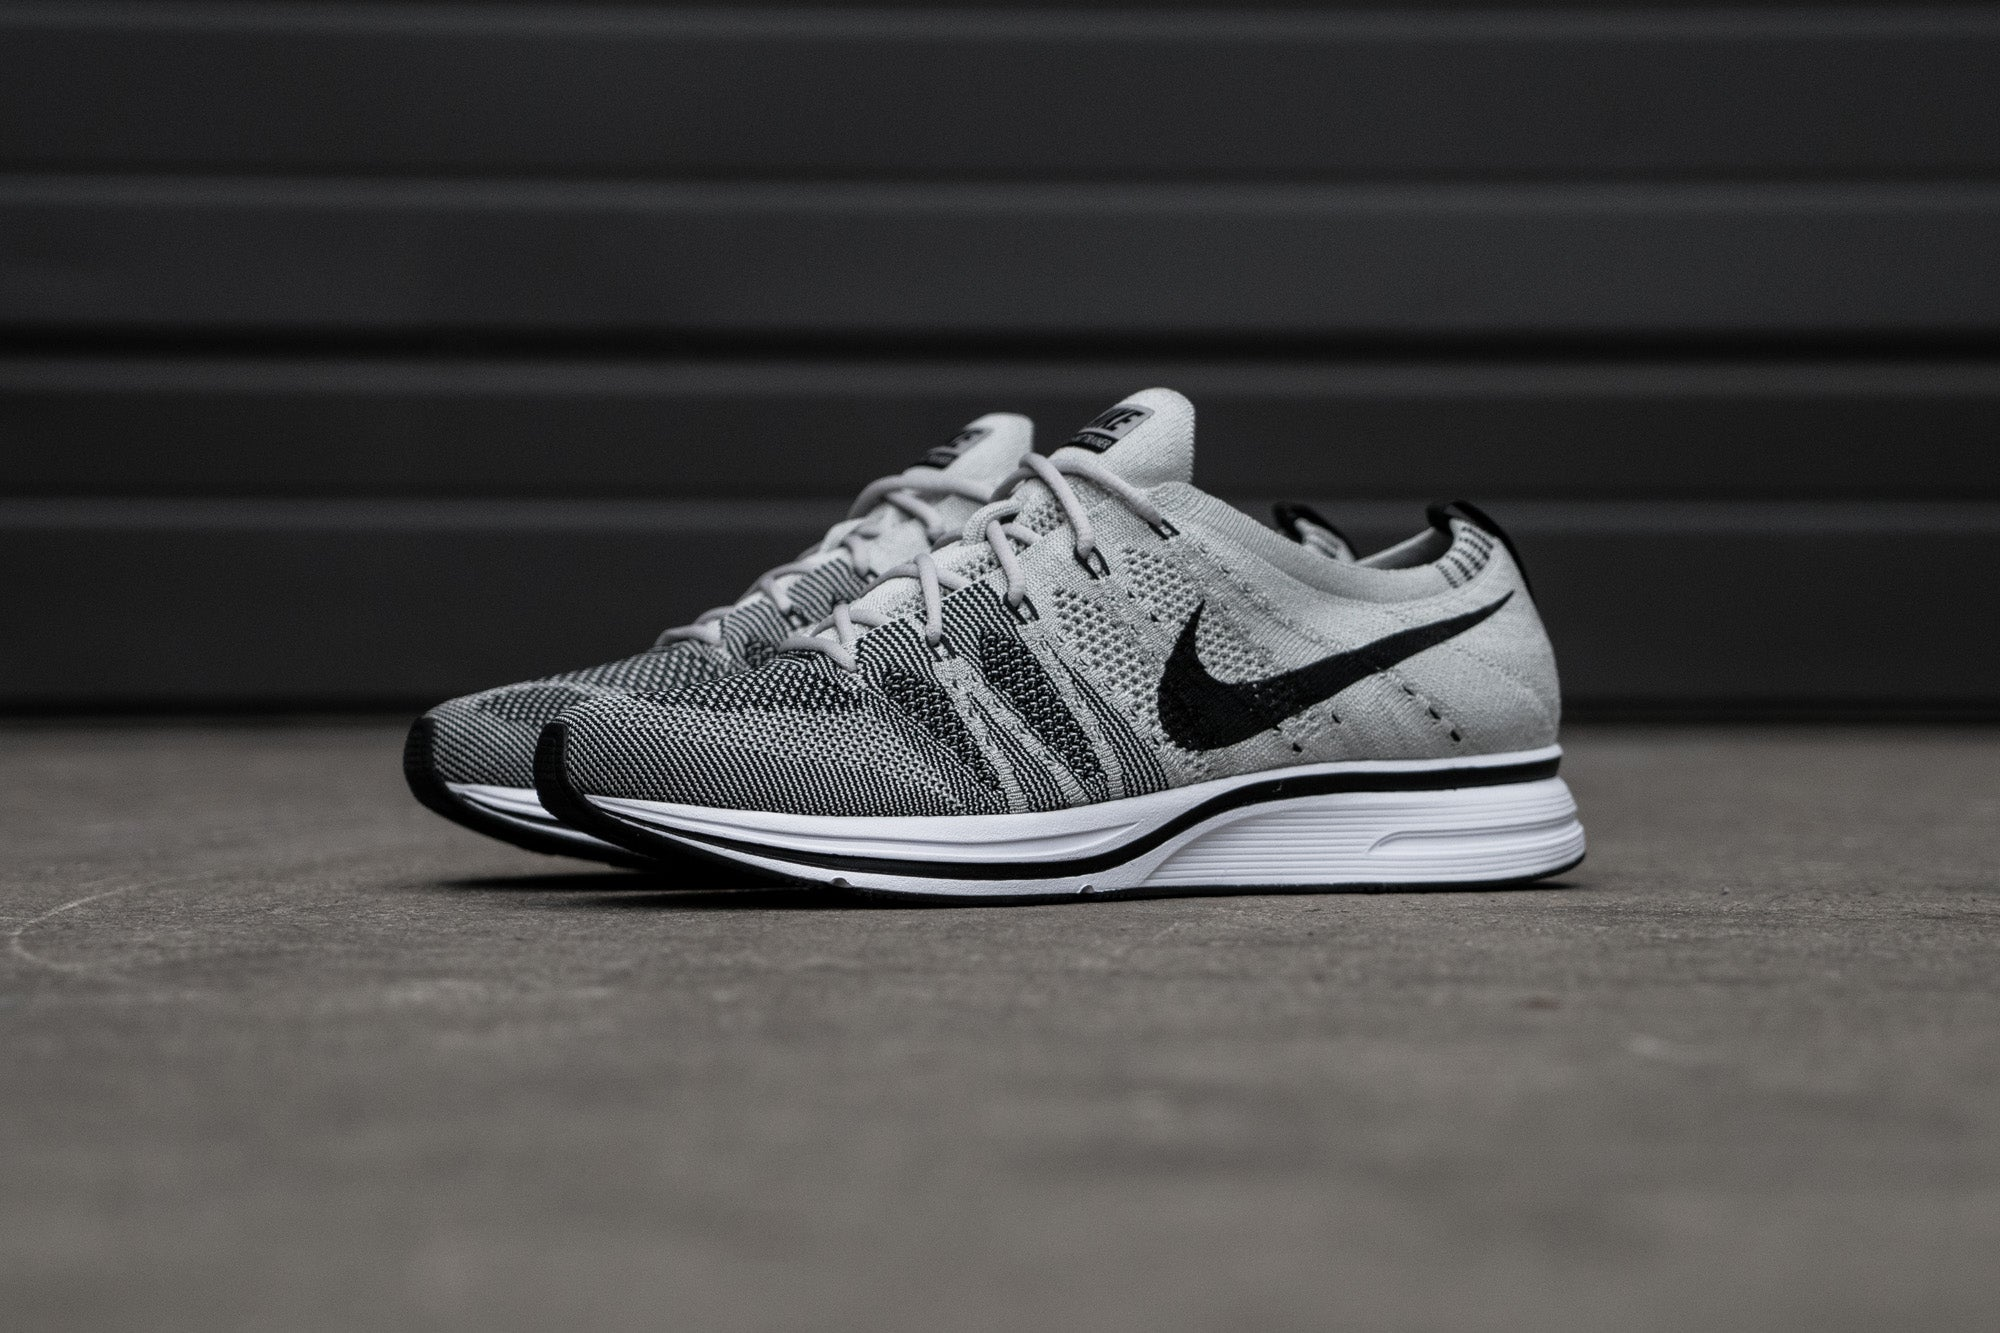 2926017a410ce5 ... Nike Flyknit Trainer - Pale Grey   Sunset Tint at Notre ...